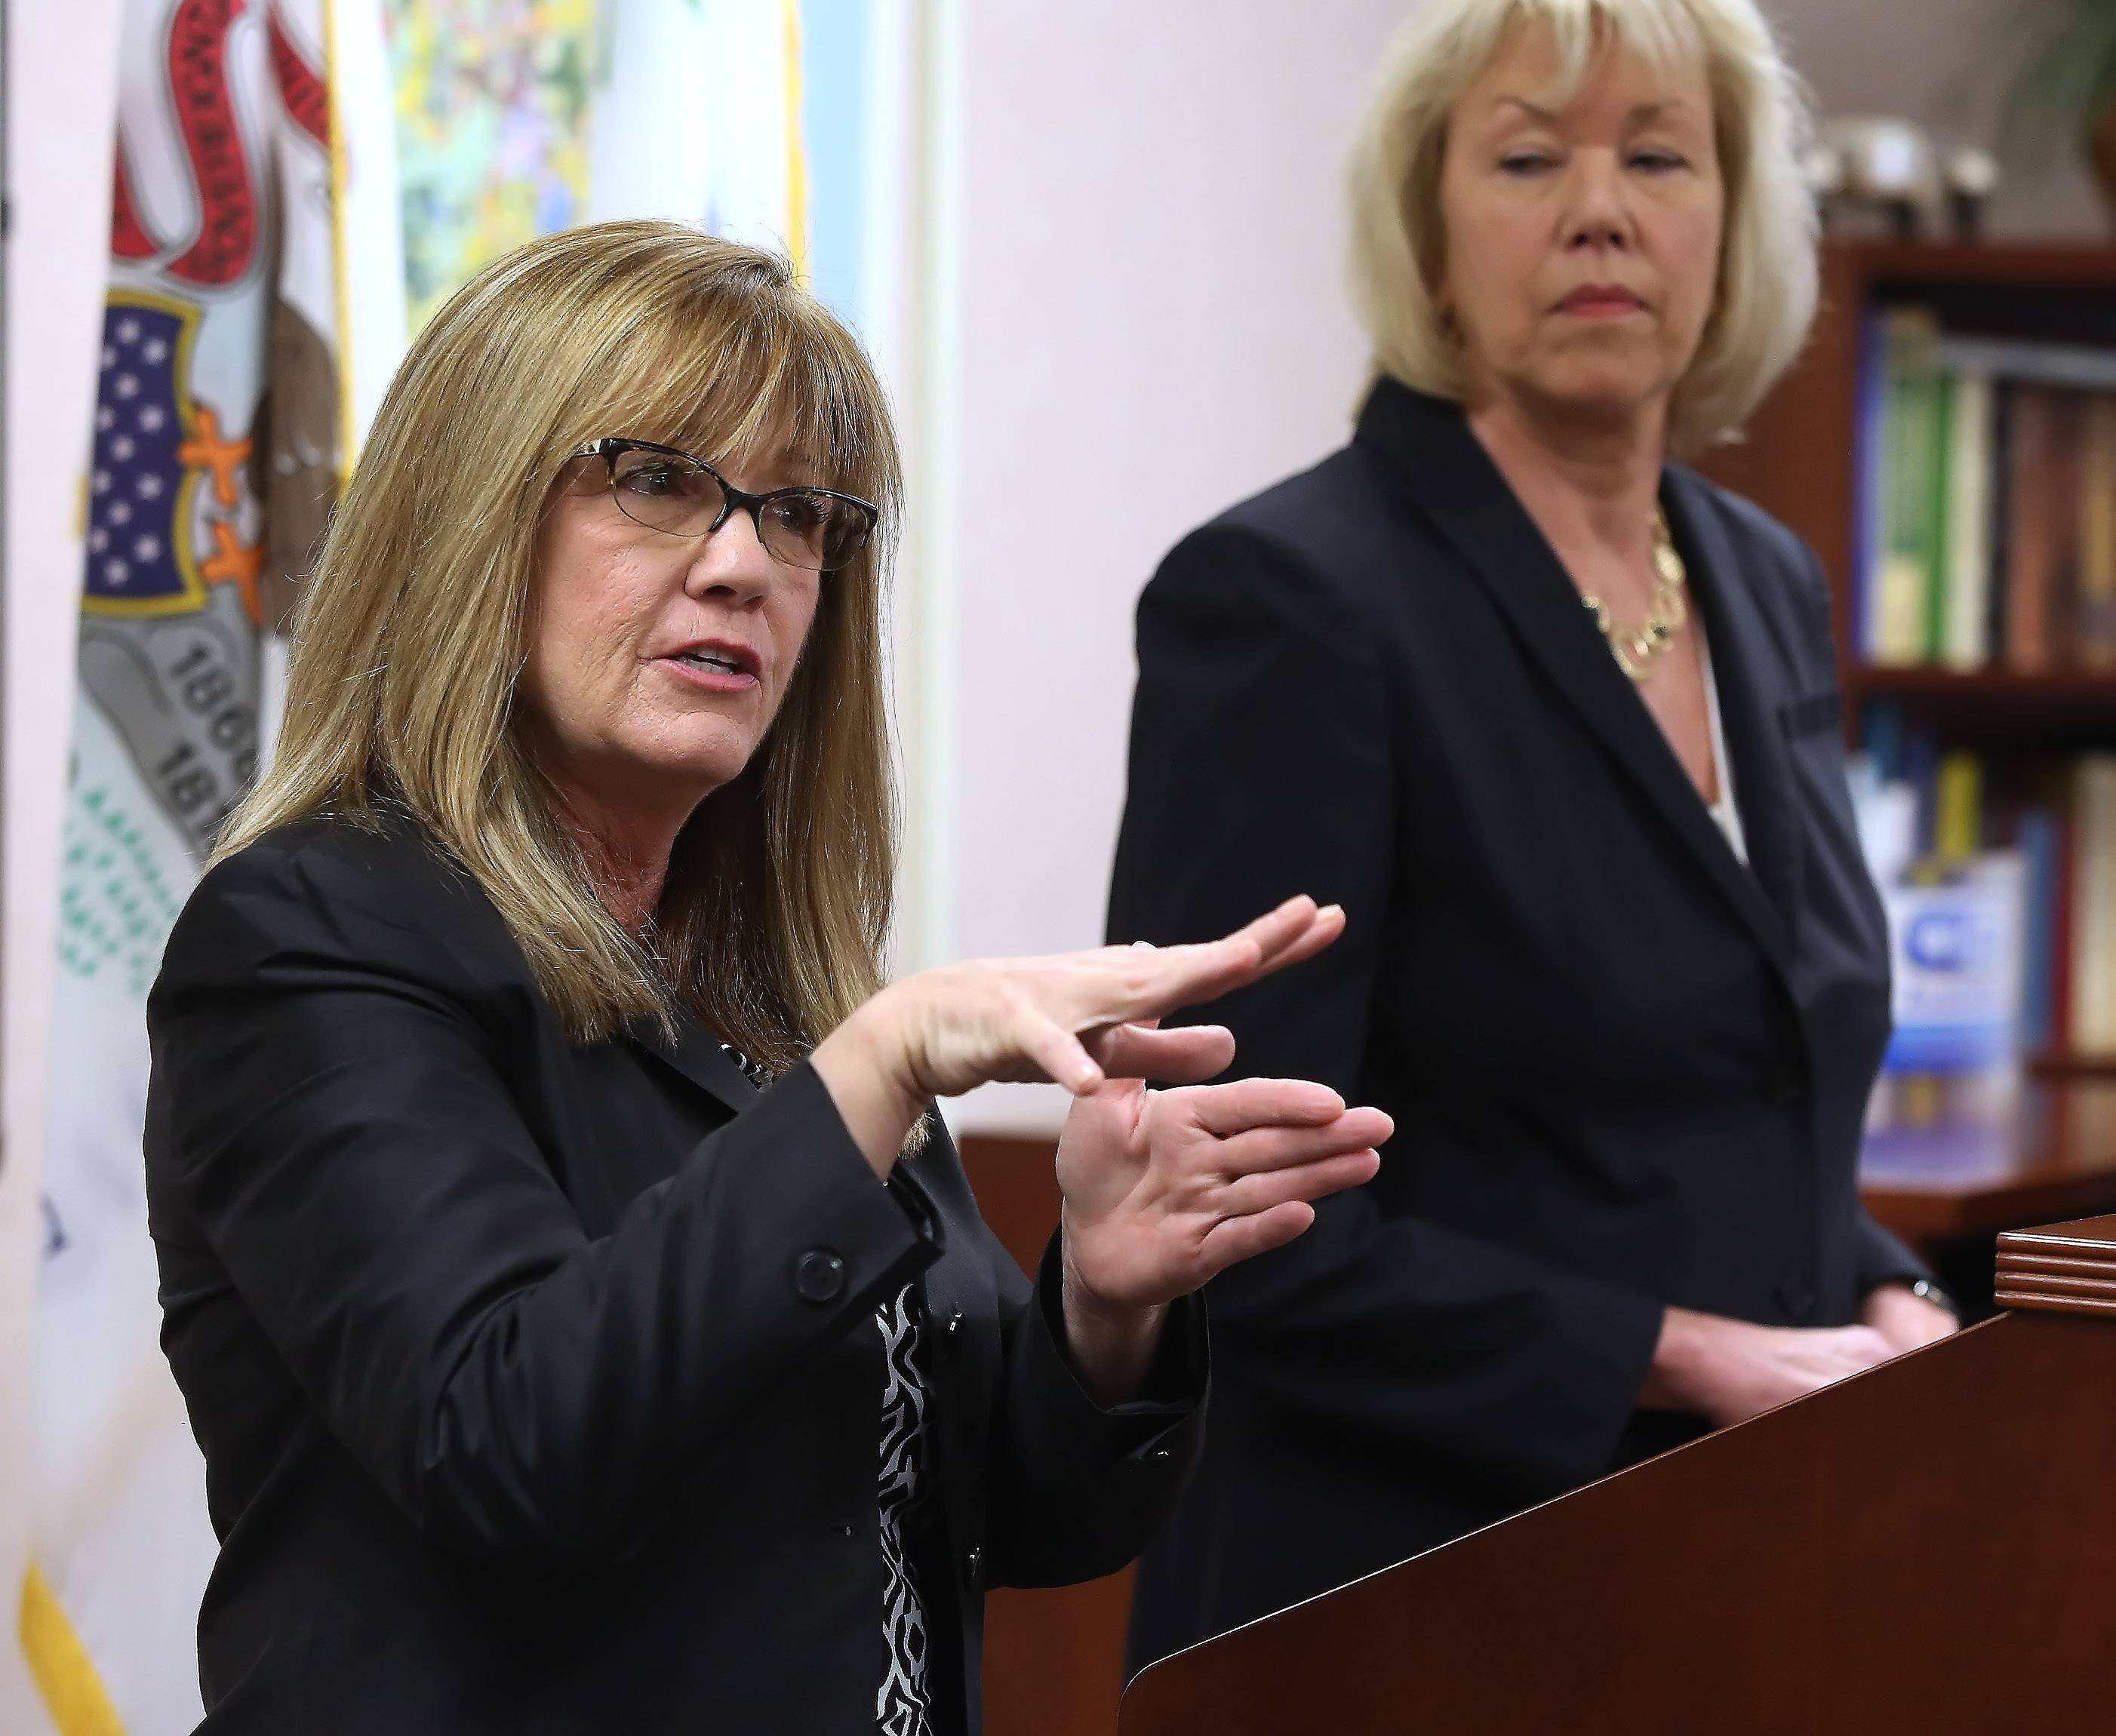 State Sens. Melinda Bush, left, and Julie Morrison introduced legislation to merge township governments and road districts. Bush plans to lead a working group on government consolidation in Lake County, but is awaiting the governor's approval on some members of the group.